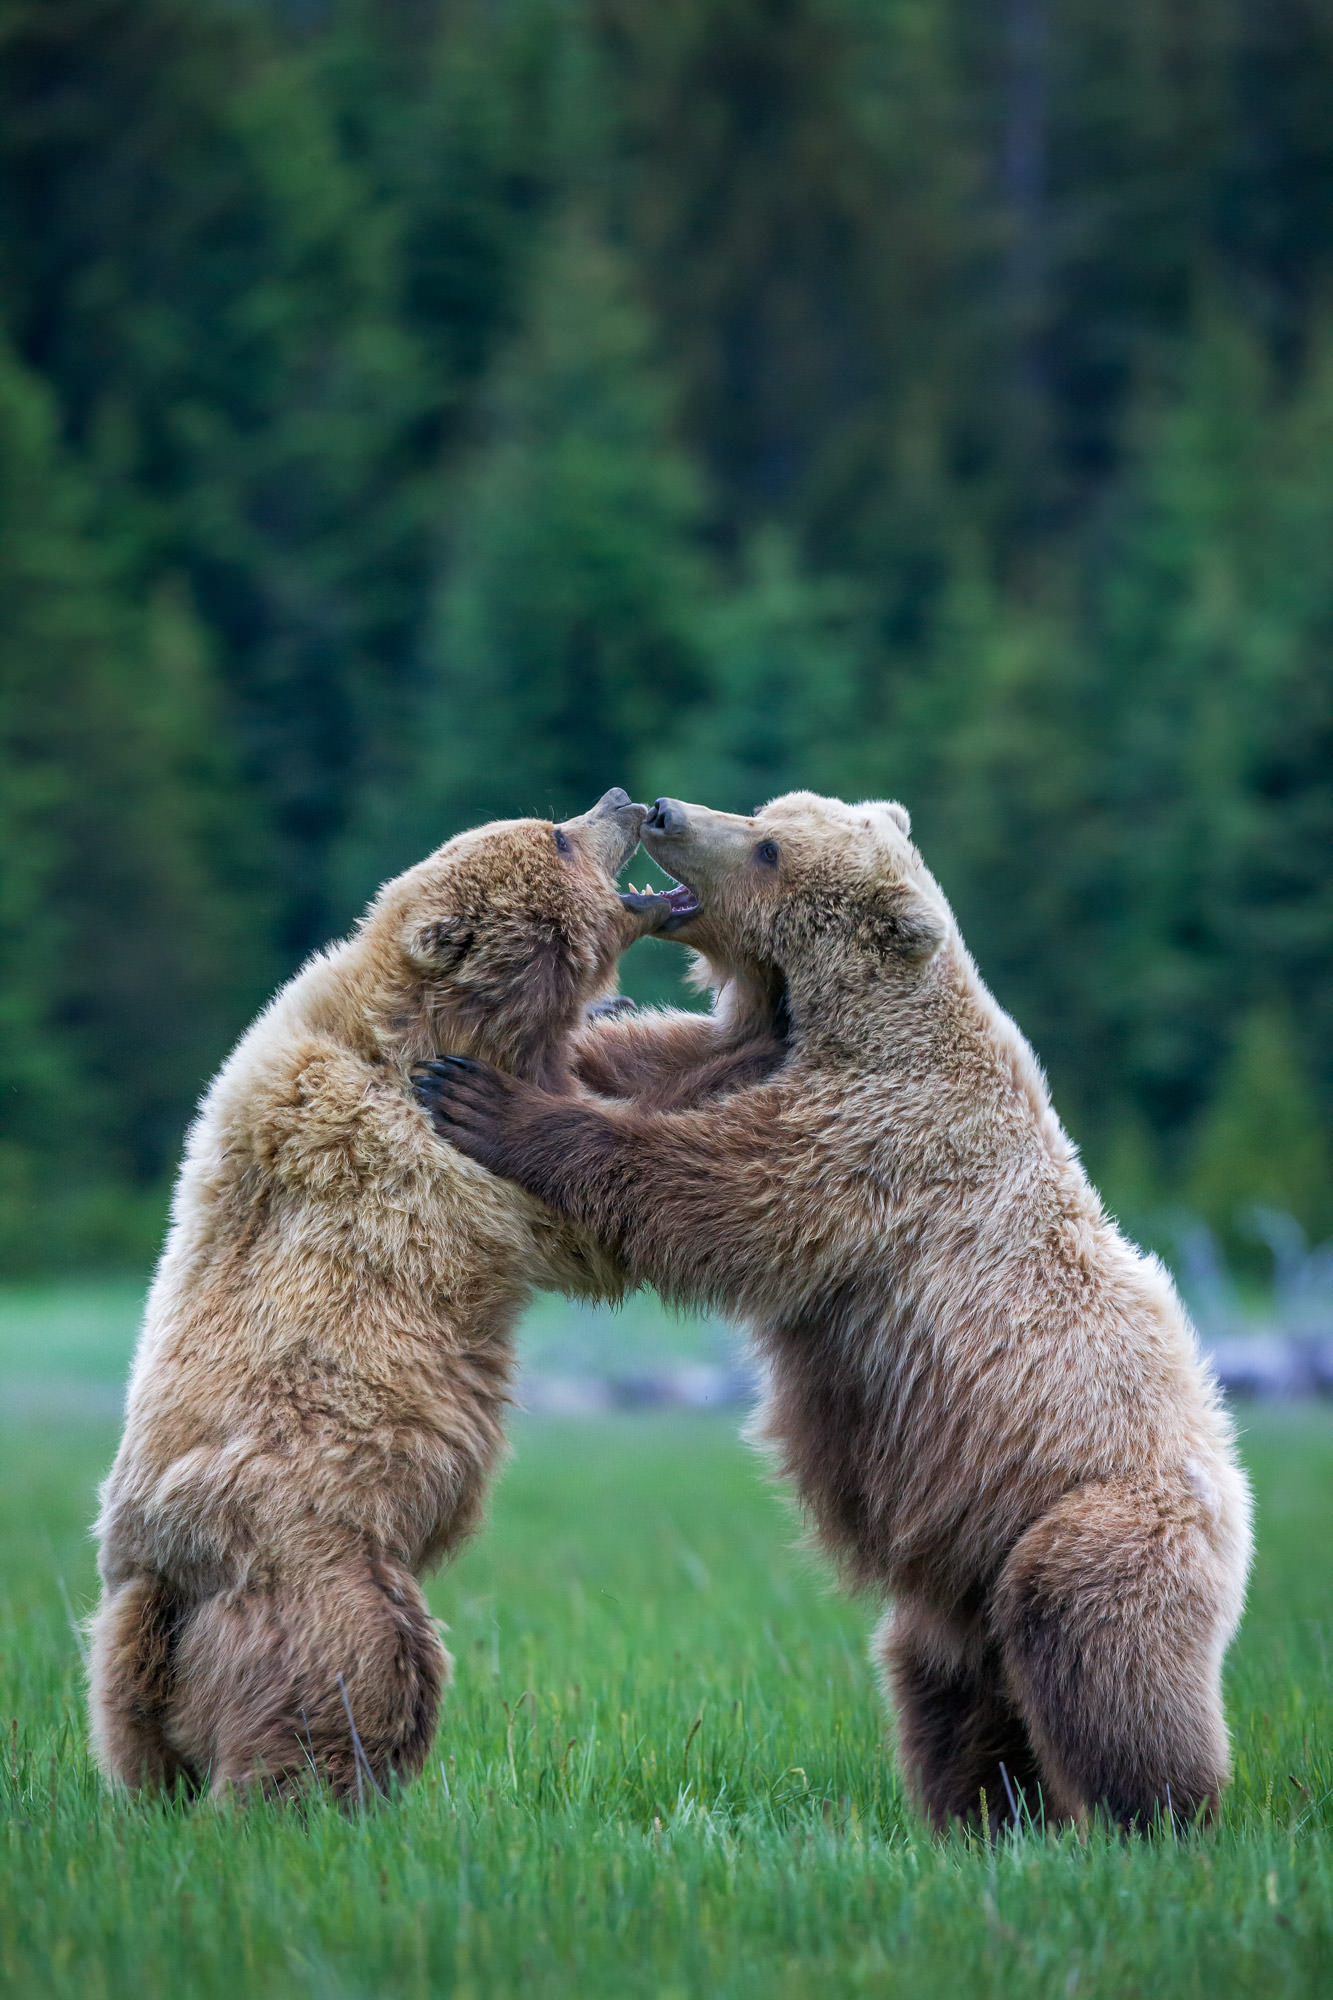 Bear, Brown Bear, Grizzly Bear, Alaska, limited edition, photograph, fine art, wildlife, photo